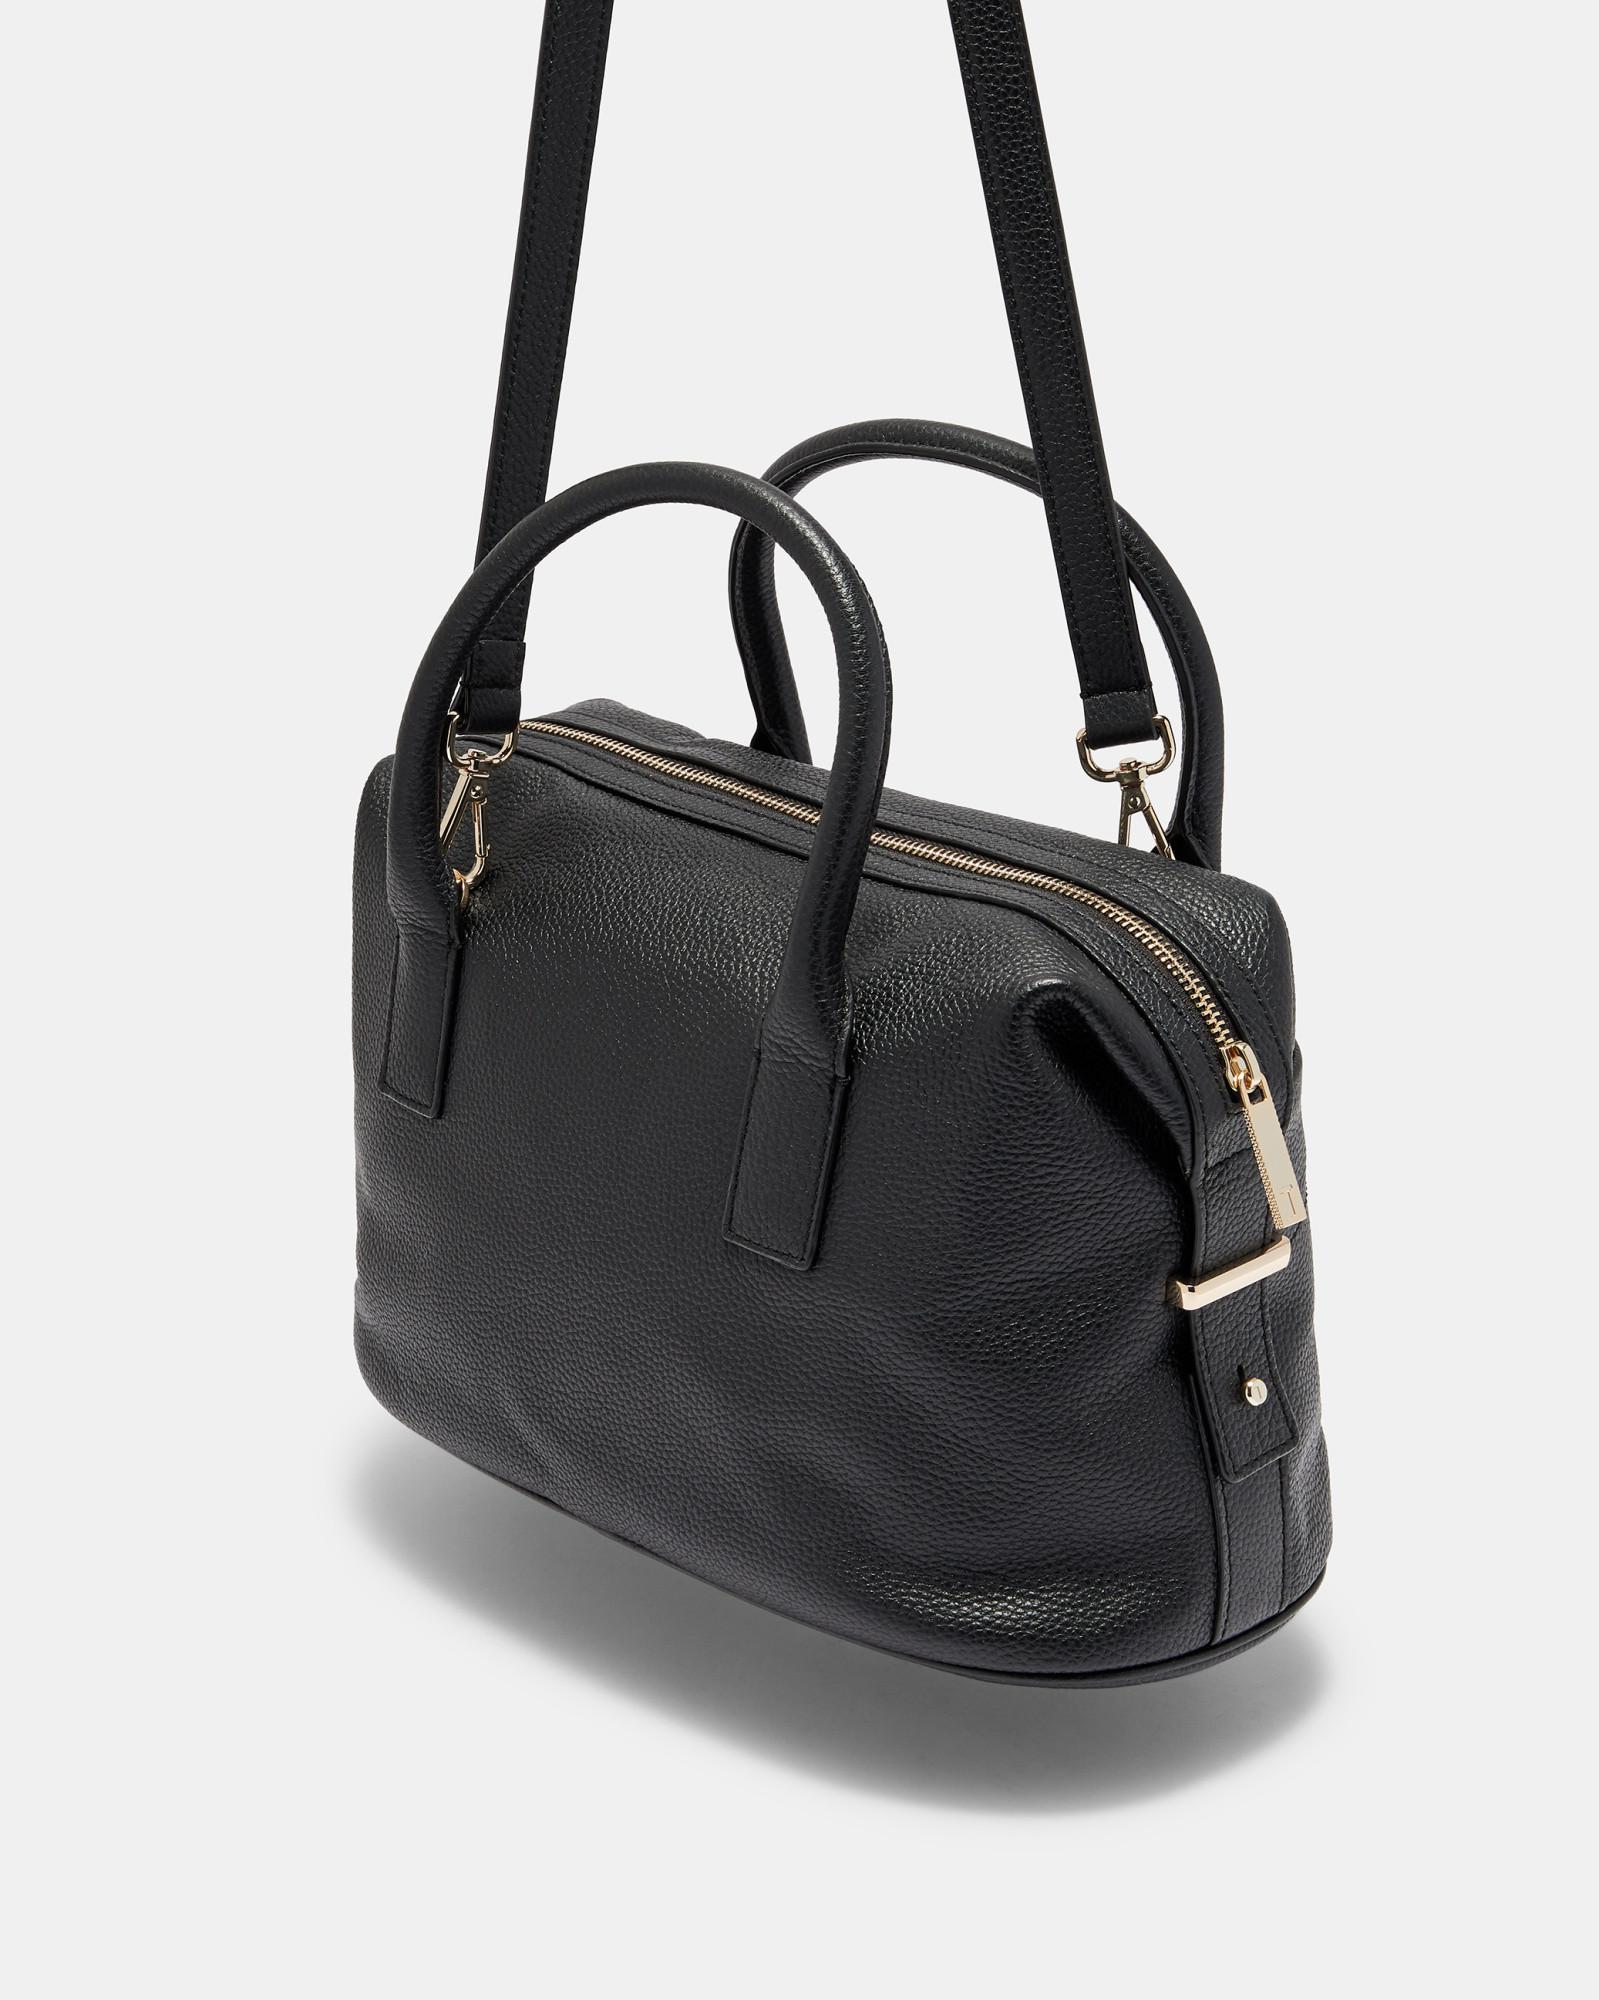 2ea3d4505e3a75 Lyst - Ted Baker Bow Detail Large Leather Bowler Bag in Black